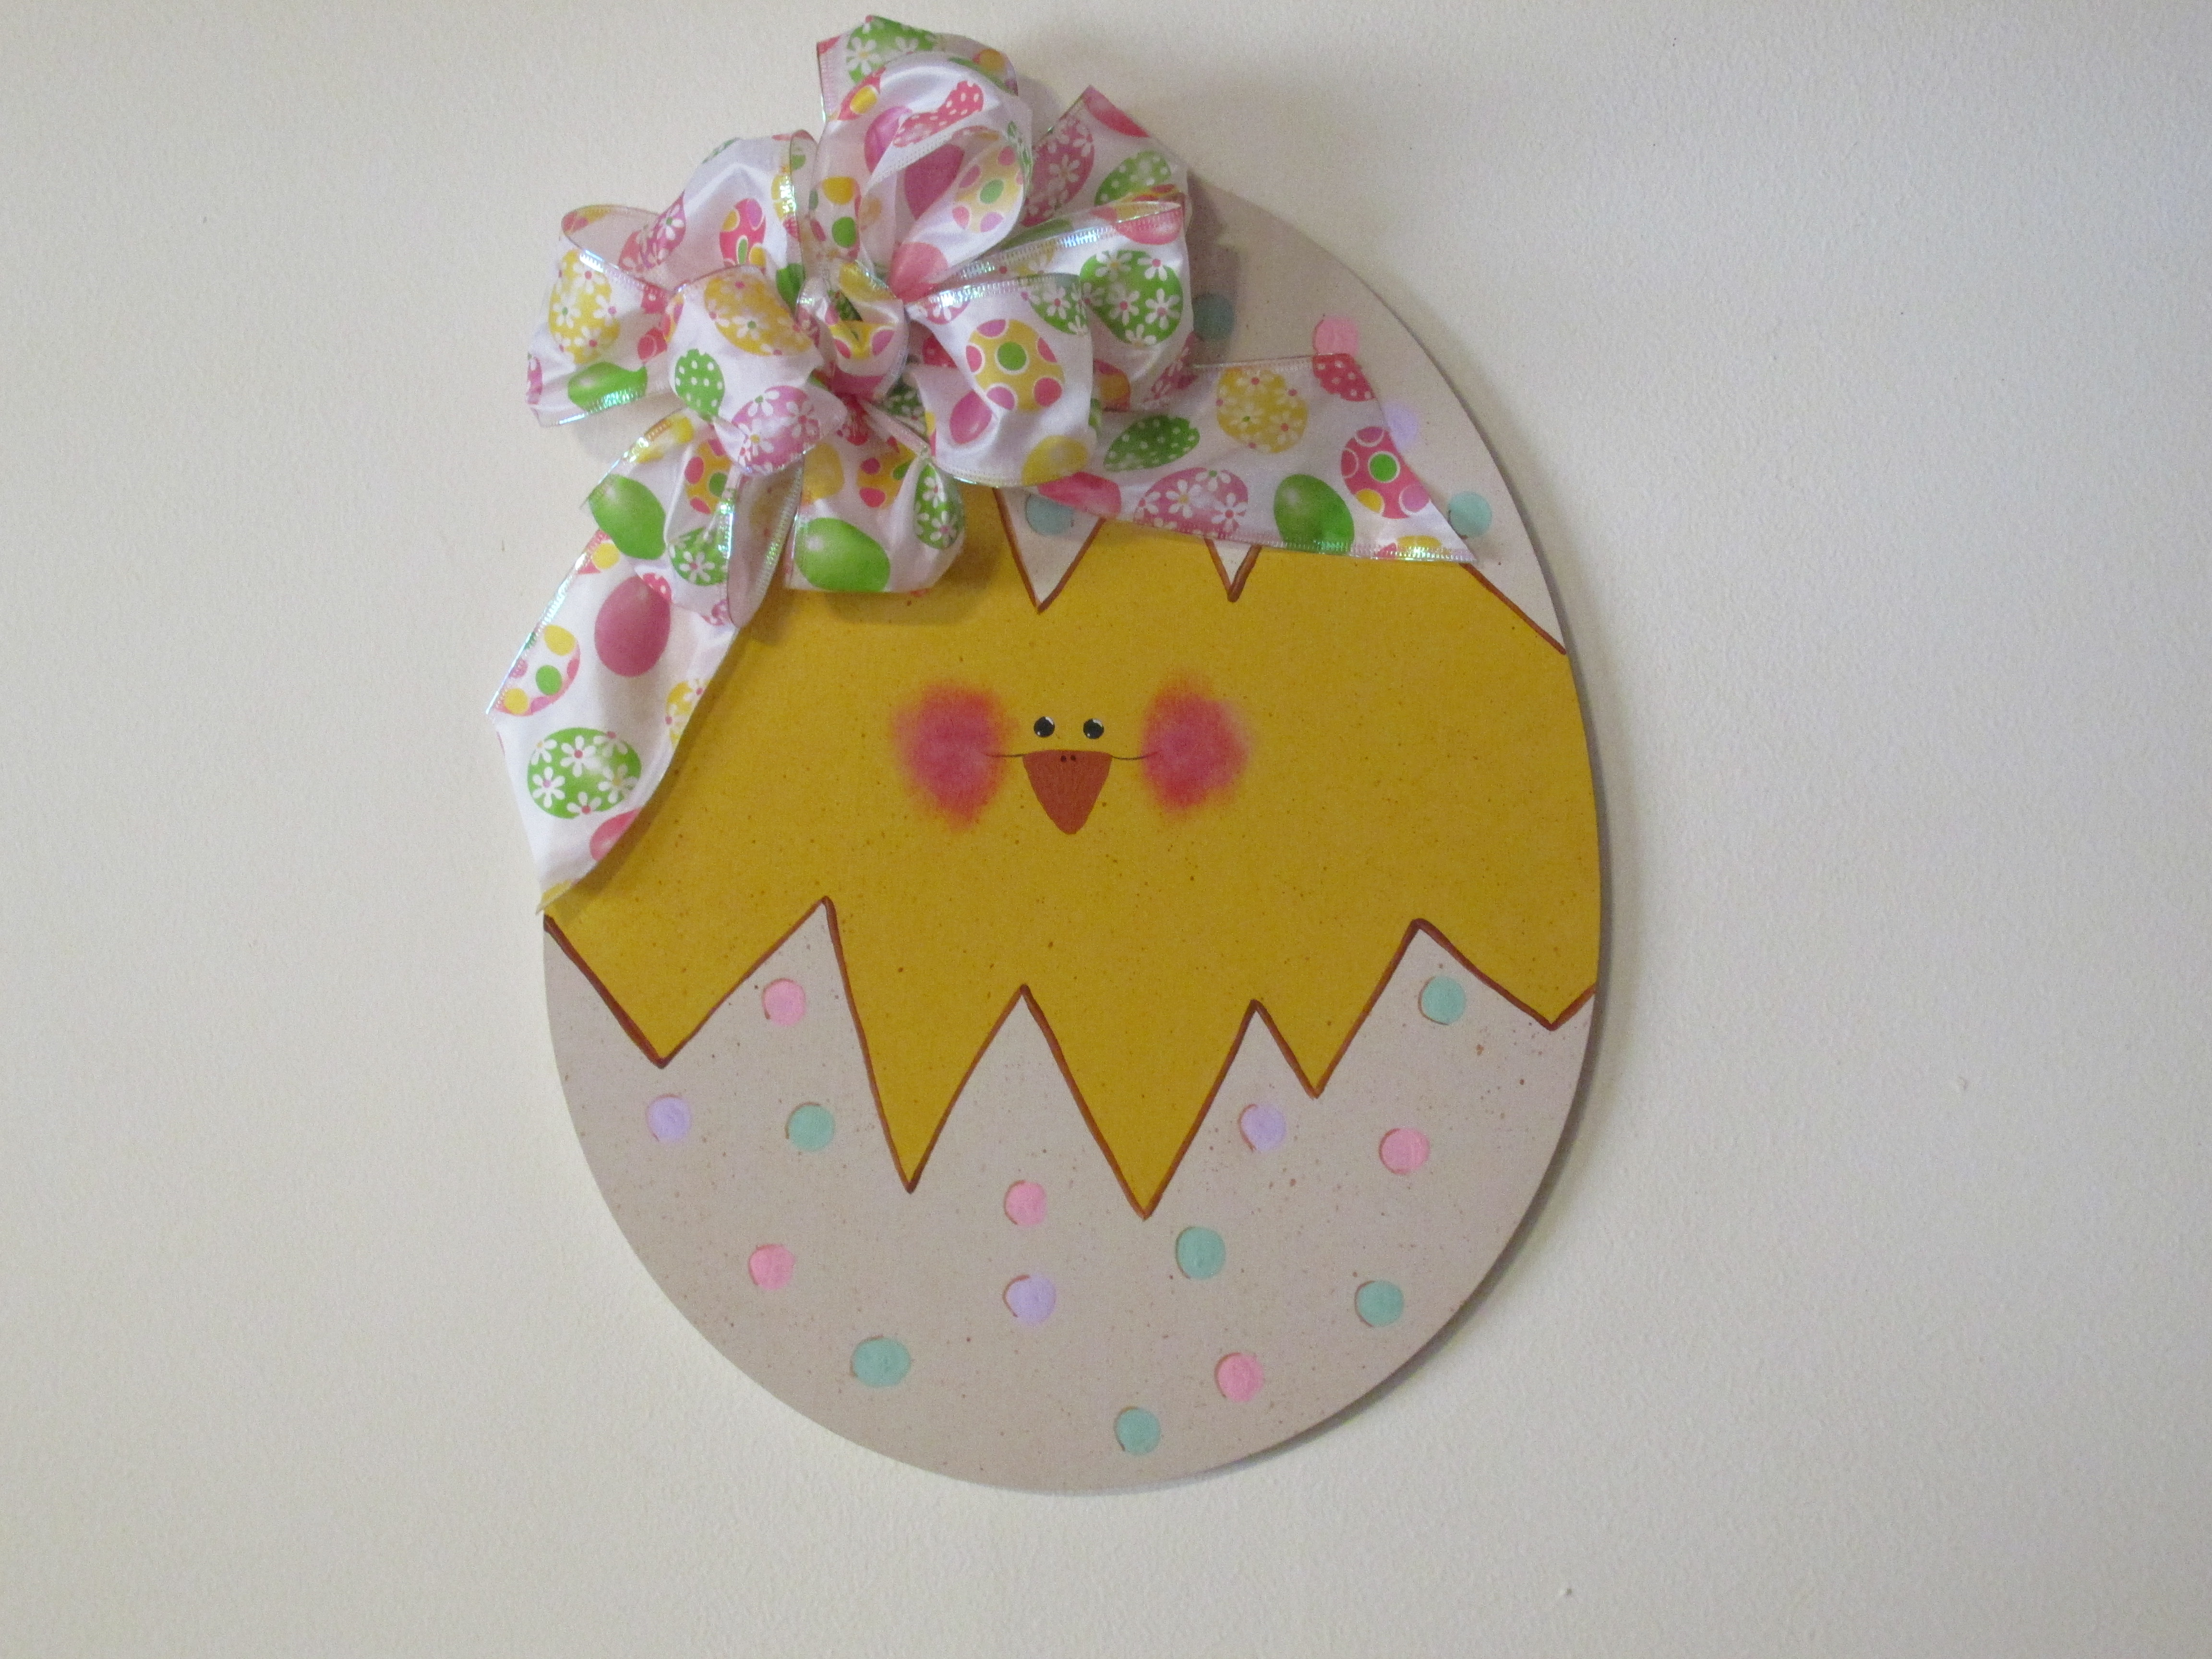 Wooden egg cutout wooden easter egg cutout wooden egg for Wood cutouts for crafts